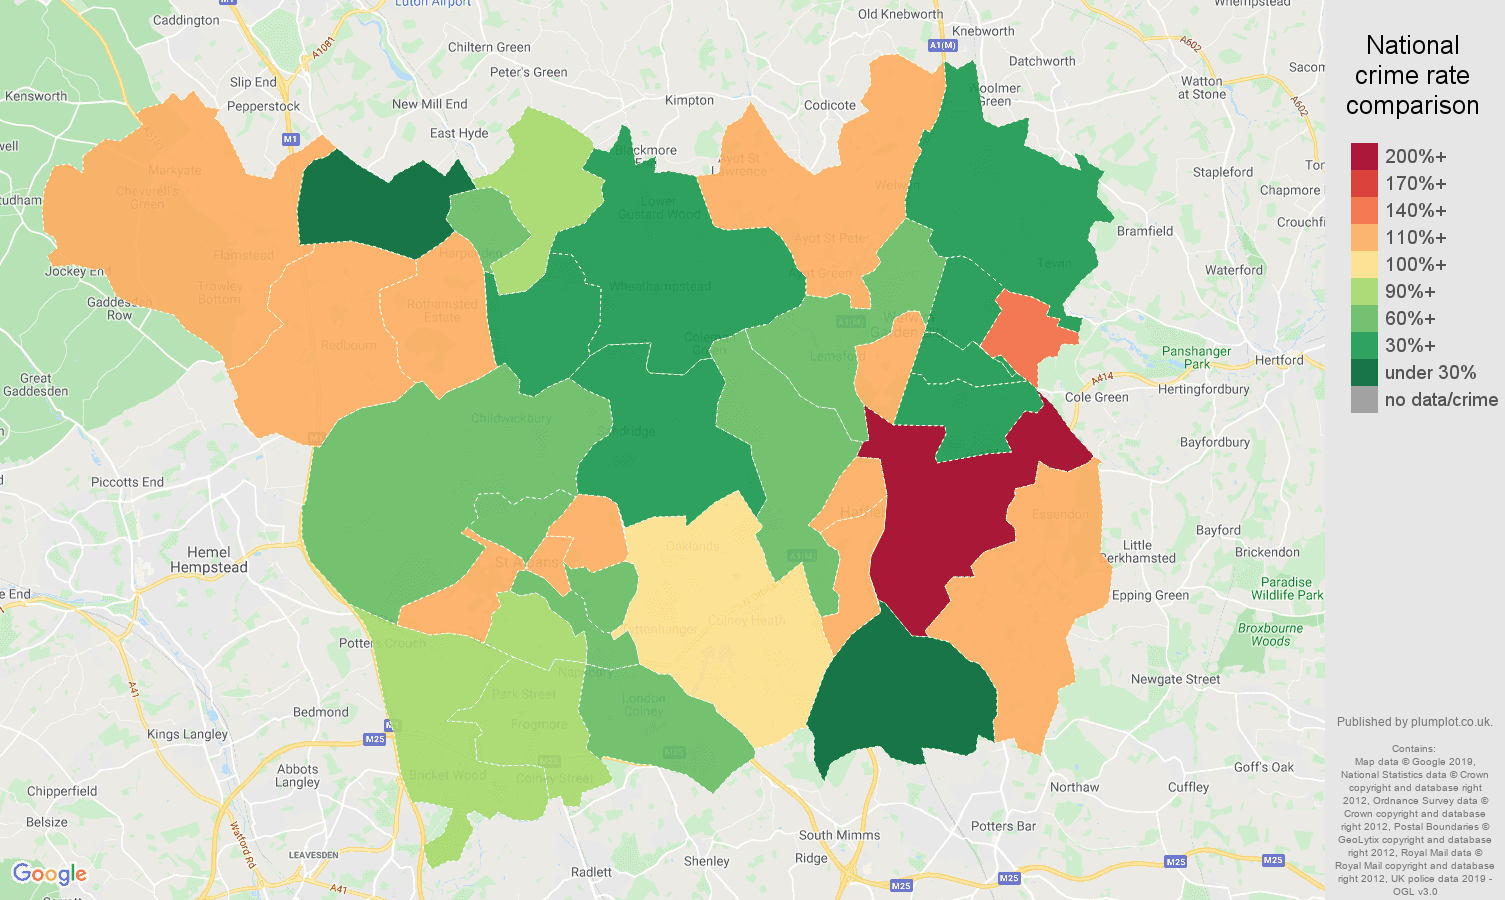 St Albans other theft crime rate comparison map